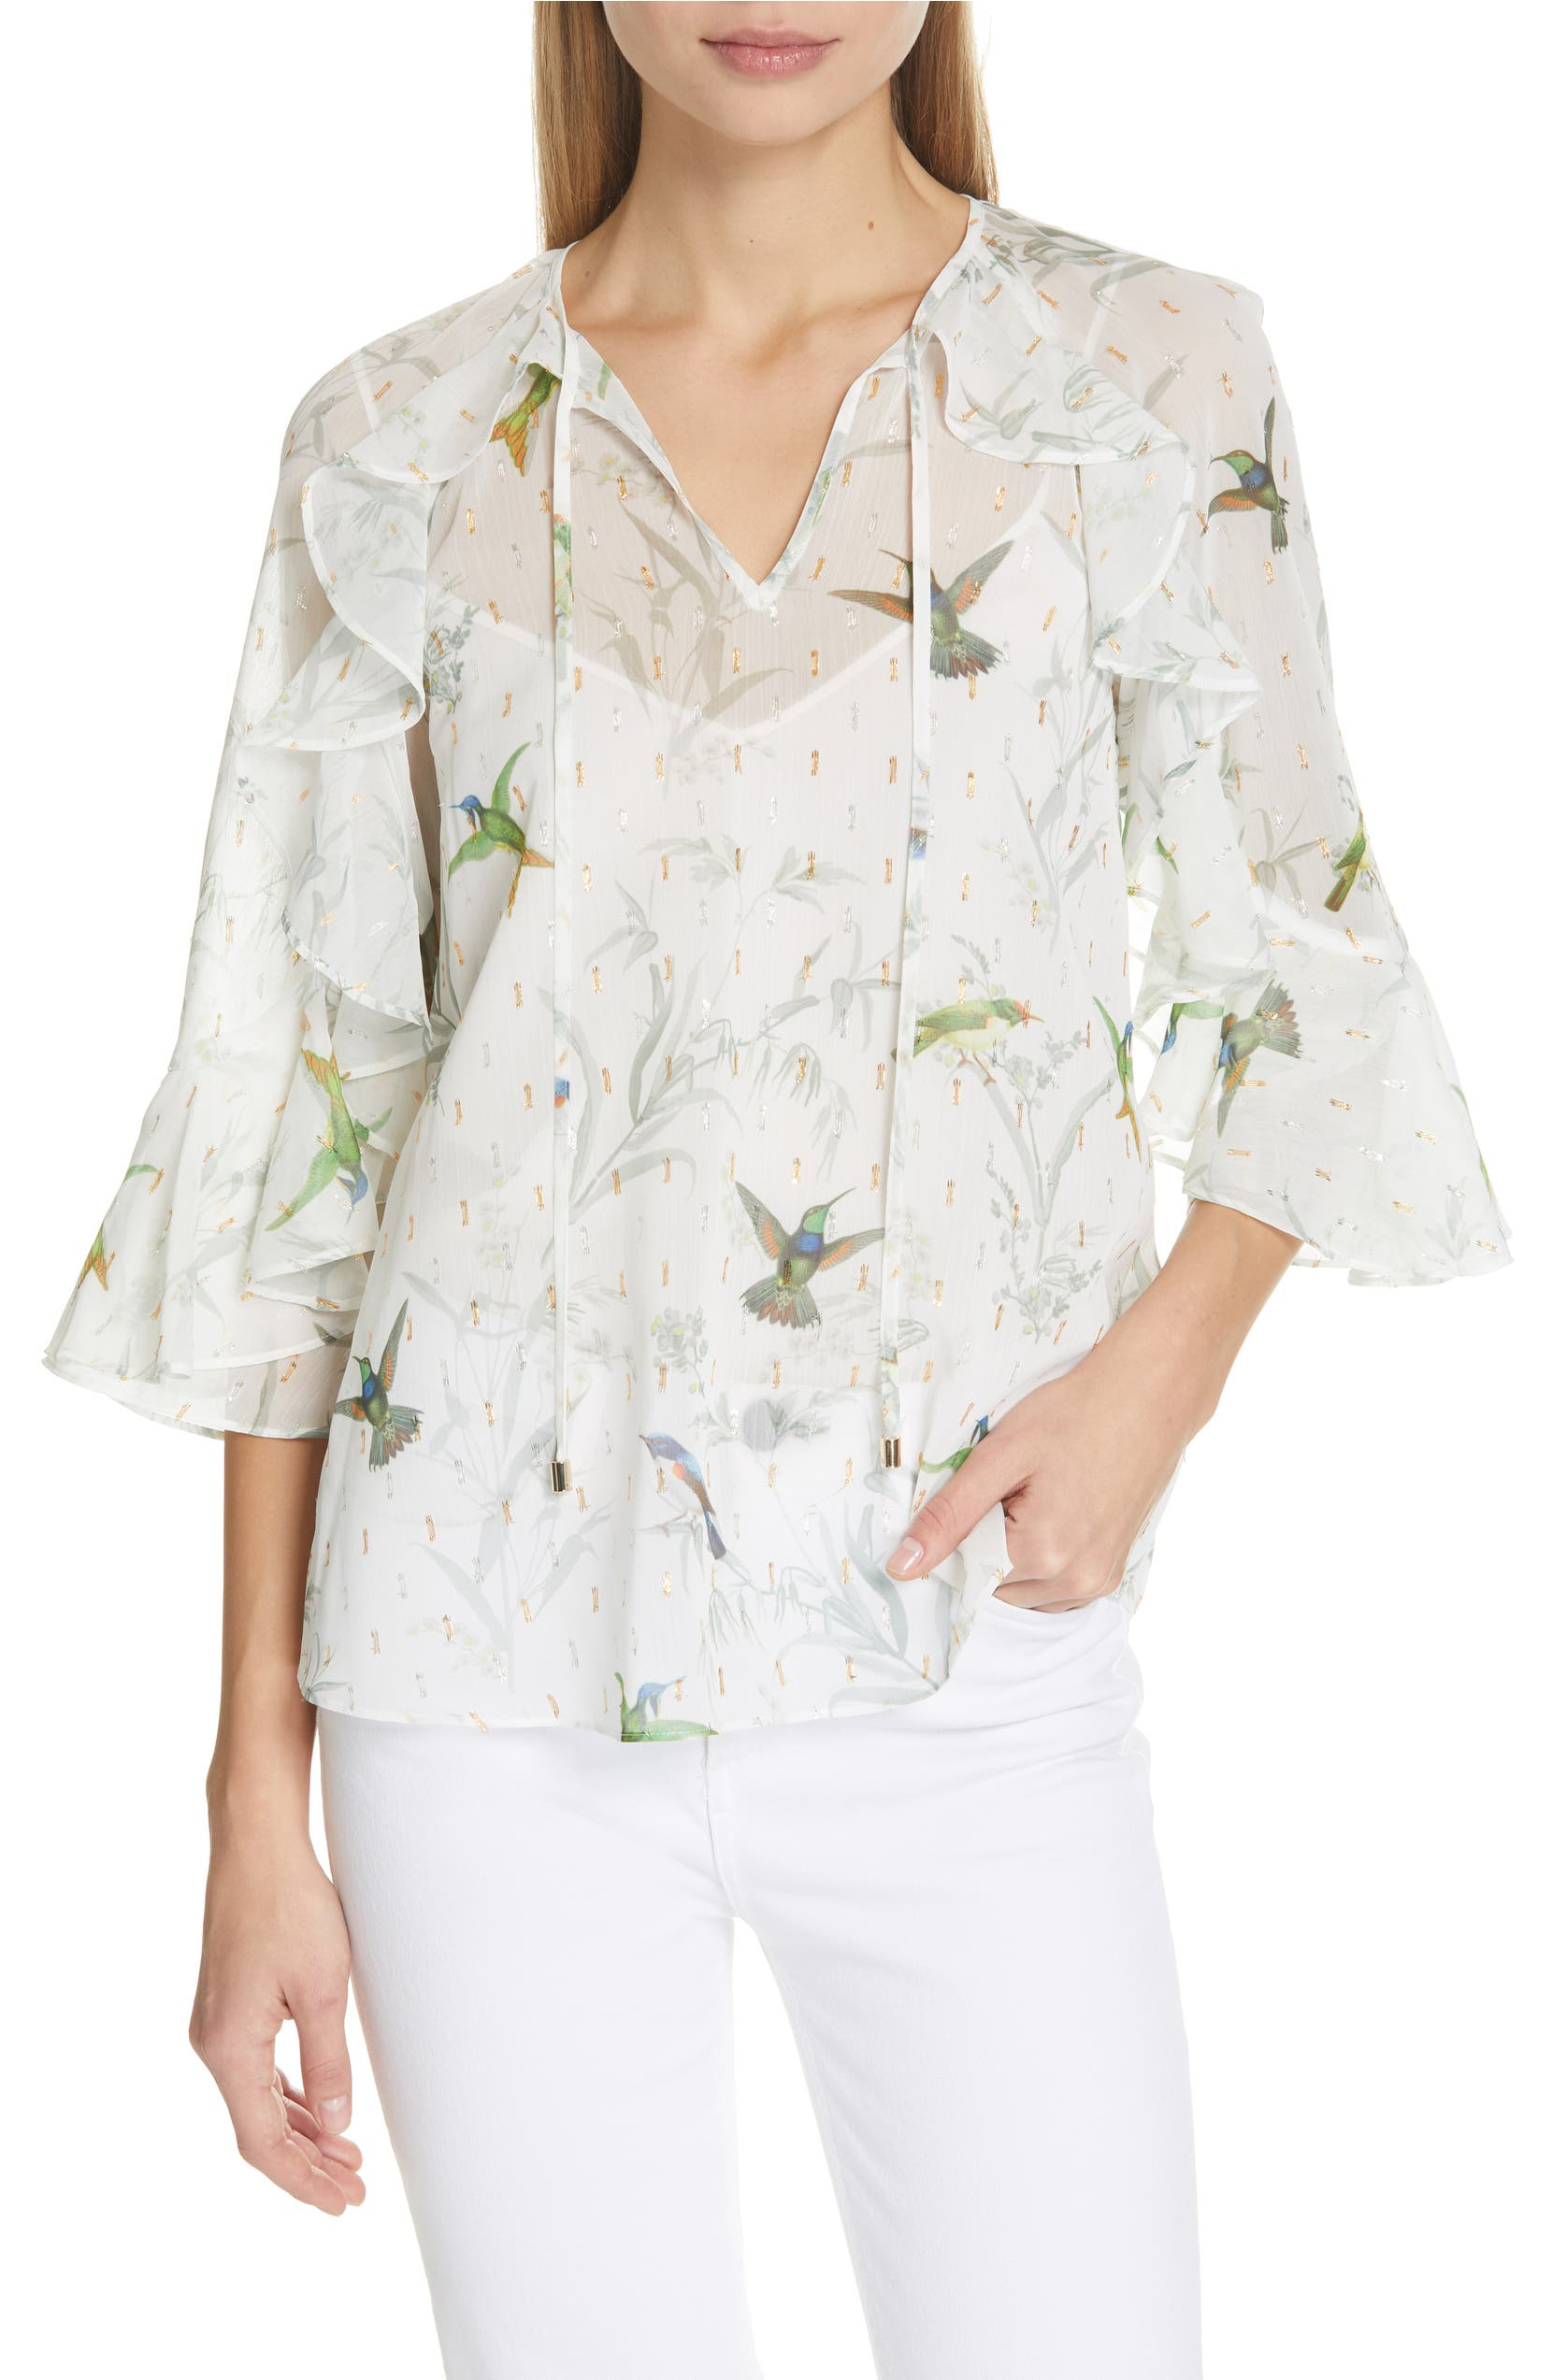 680a2416fccba2 Ted Baker London Lassii White Fortune Blouse | Nordstrom